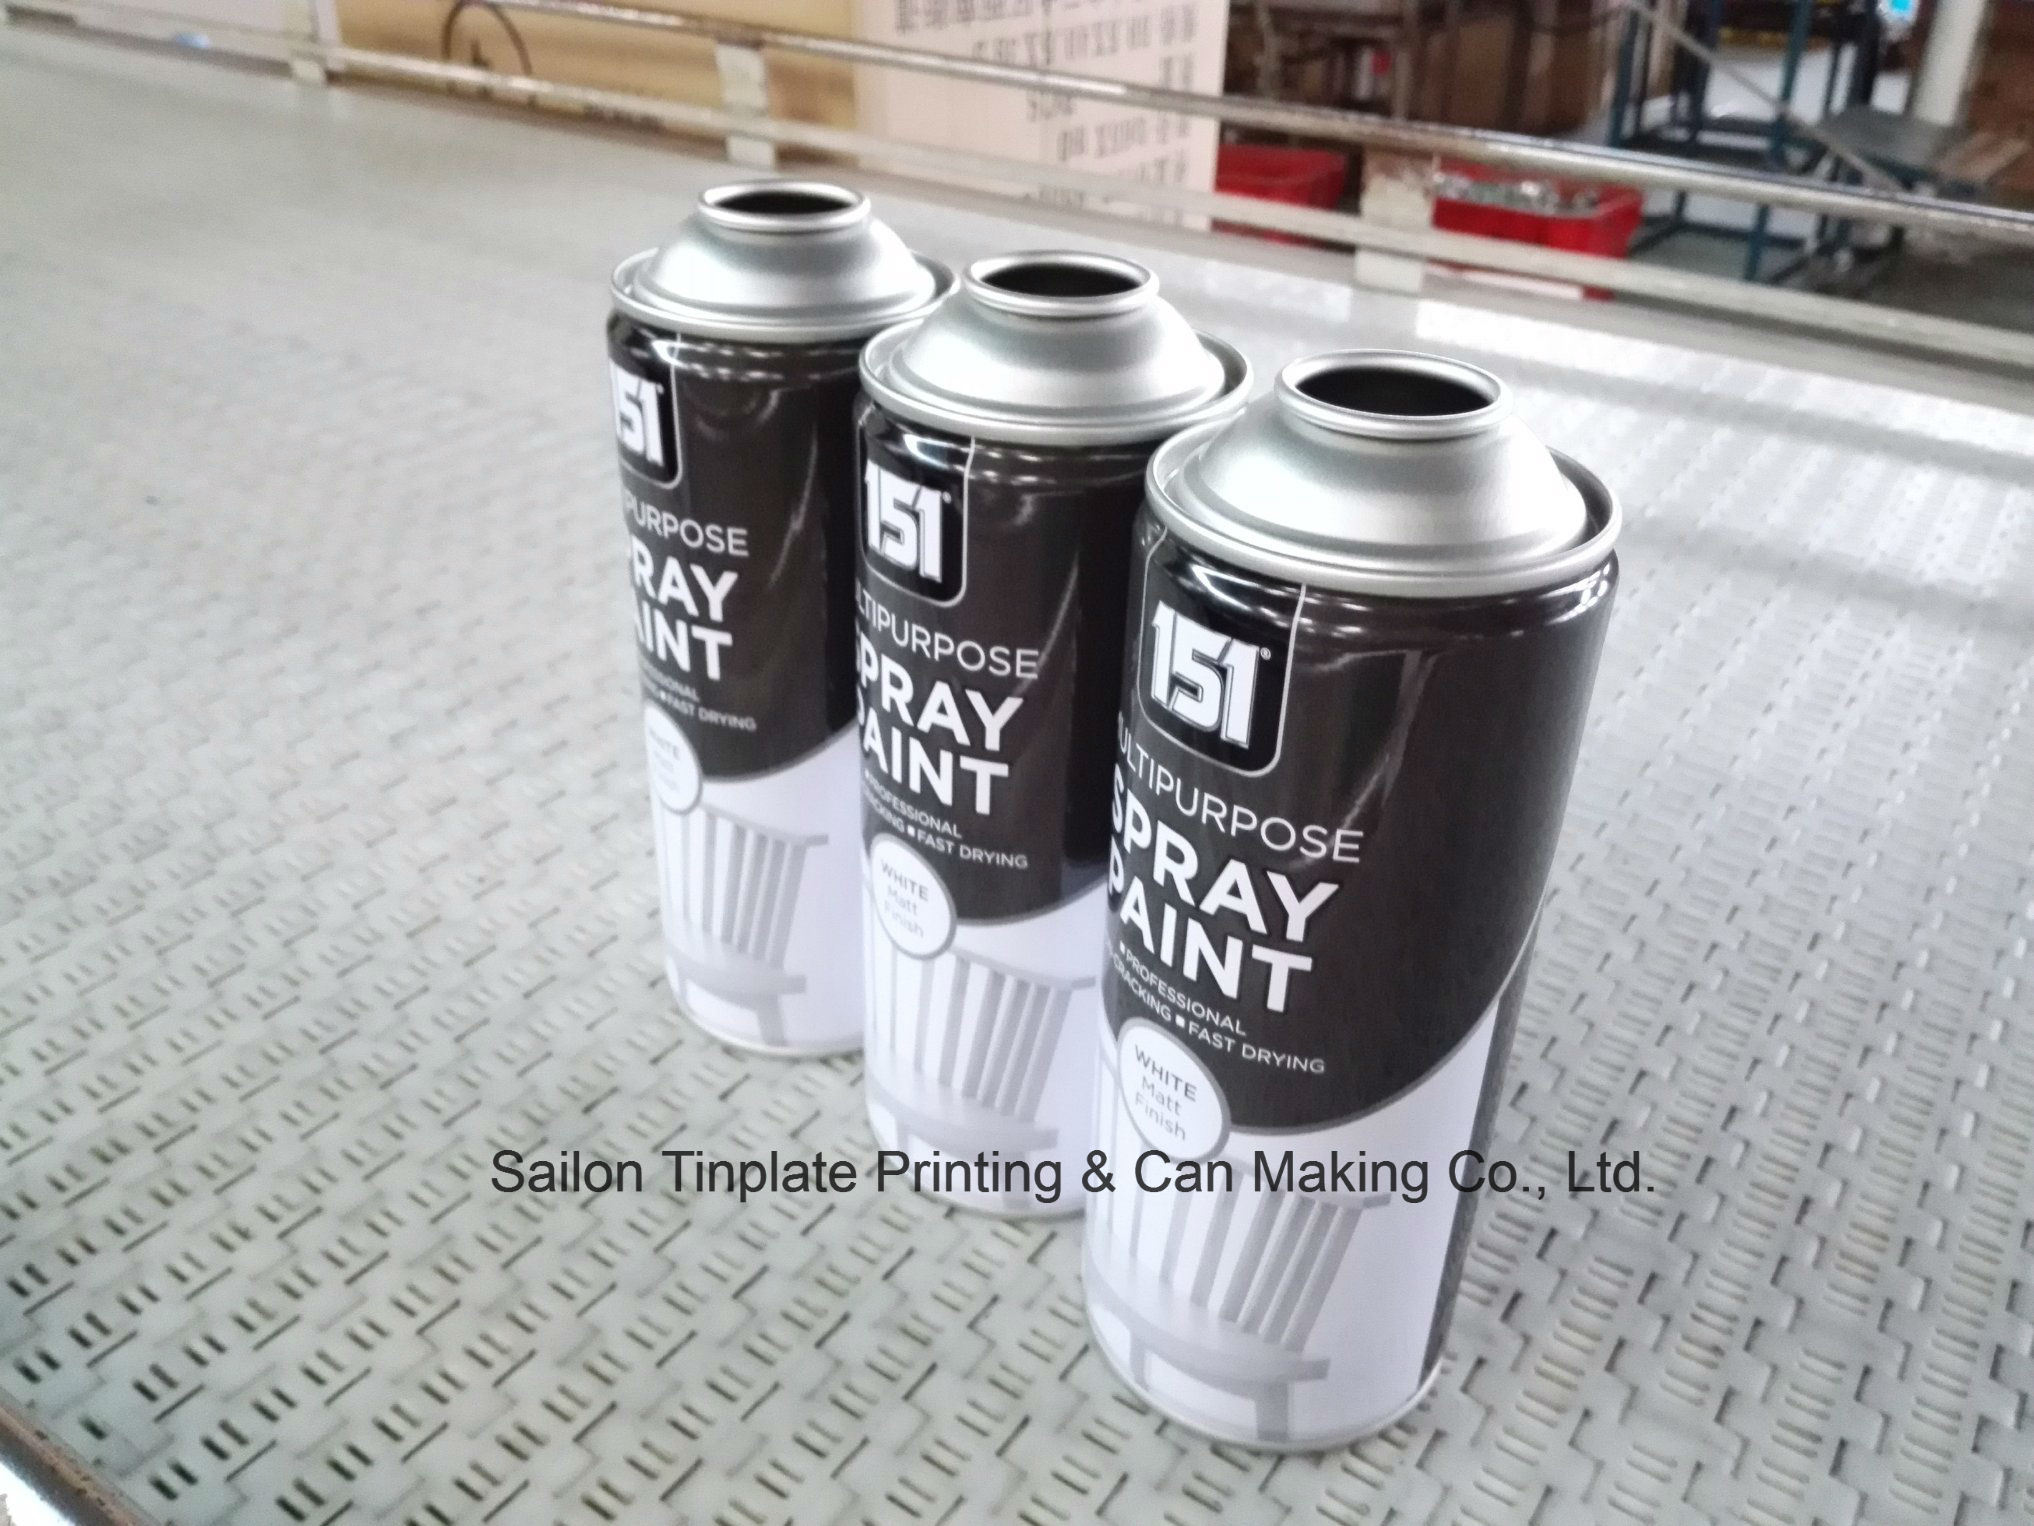 Spray Paint Cans with Printing for Whole Sale